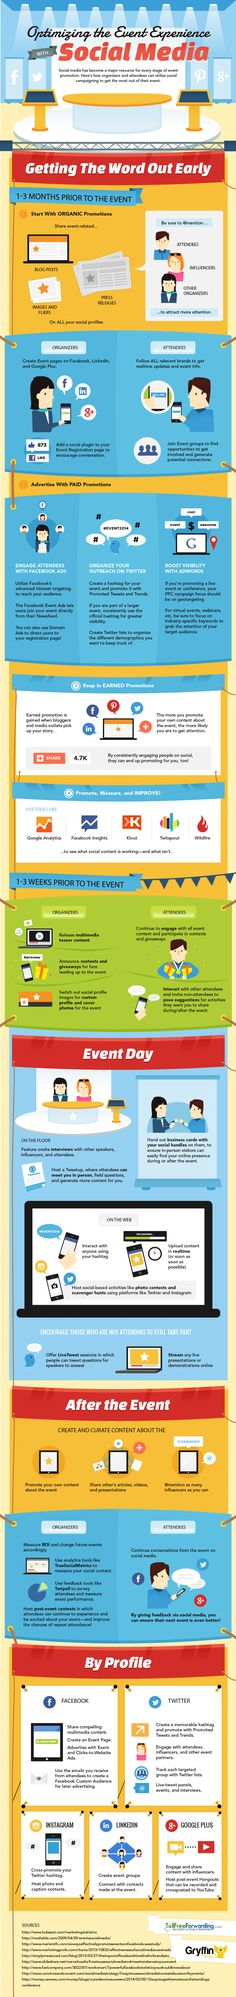 Infographic: Optimizing the #Event Experience with #SocialMedia